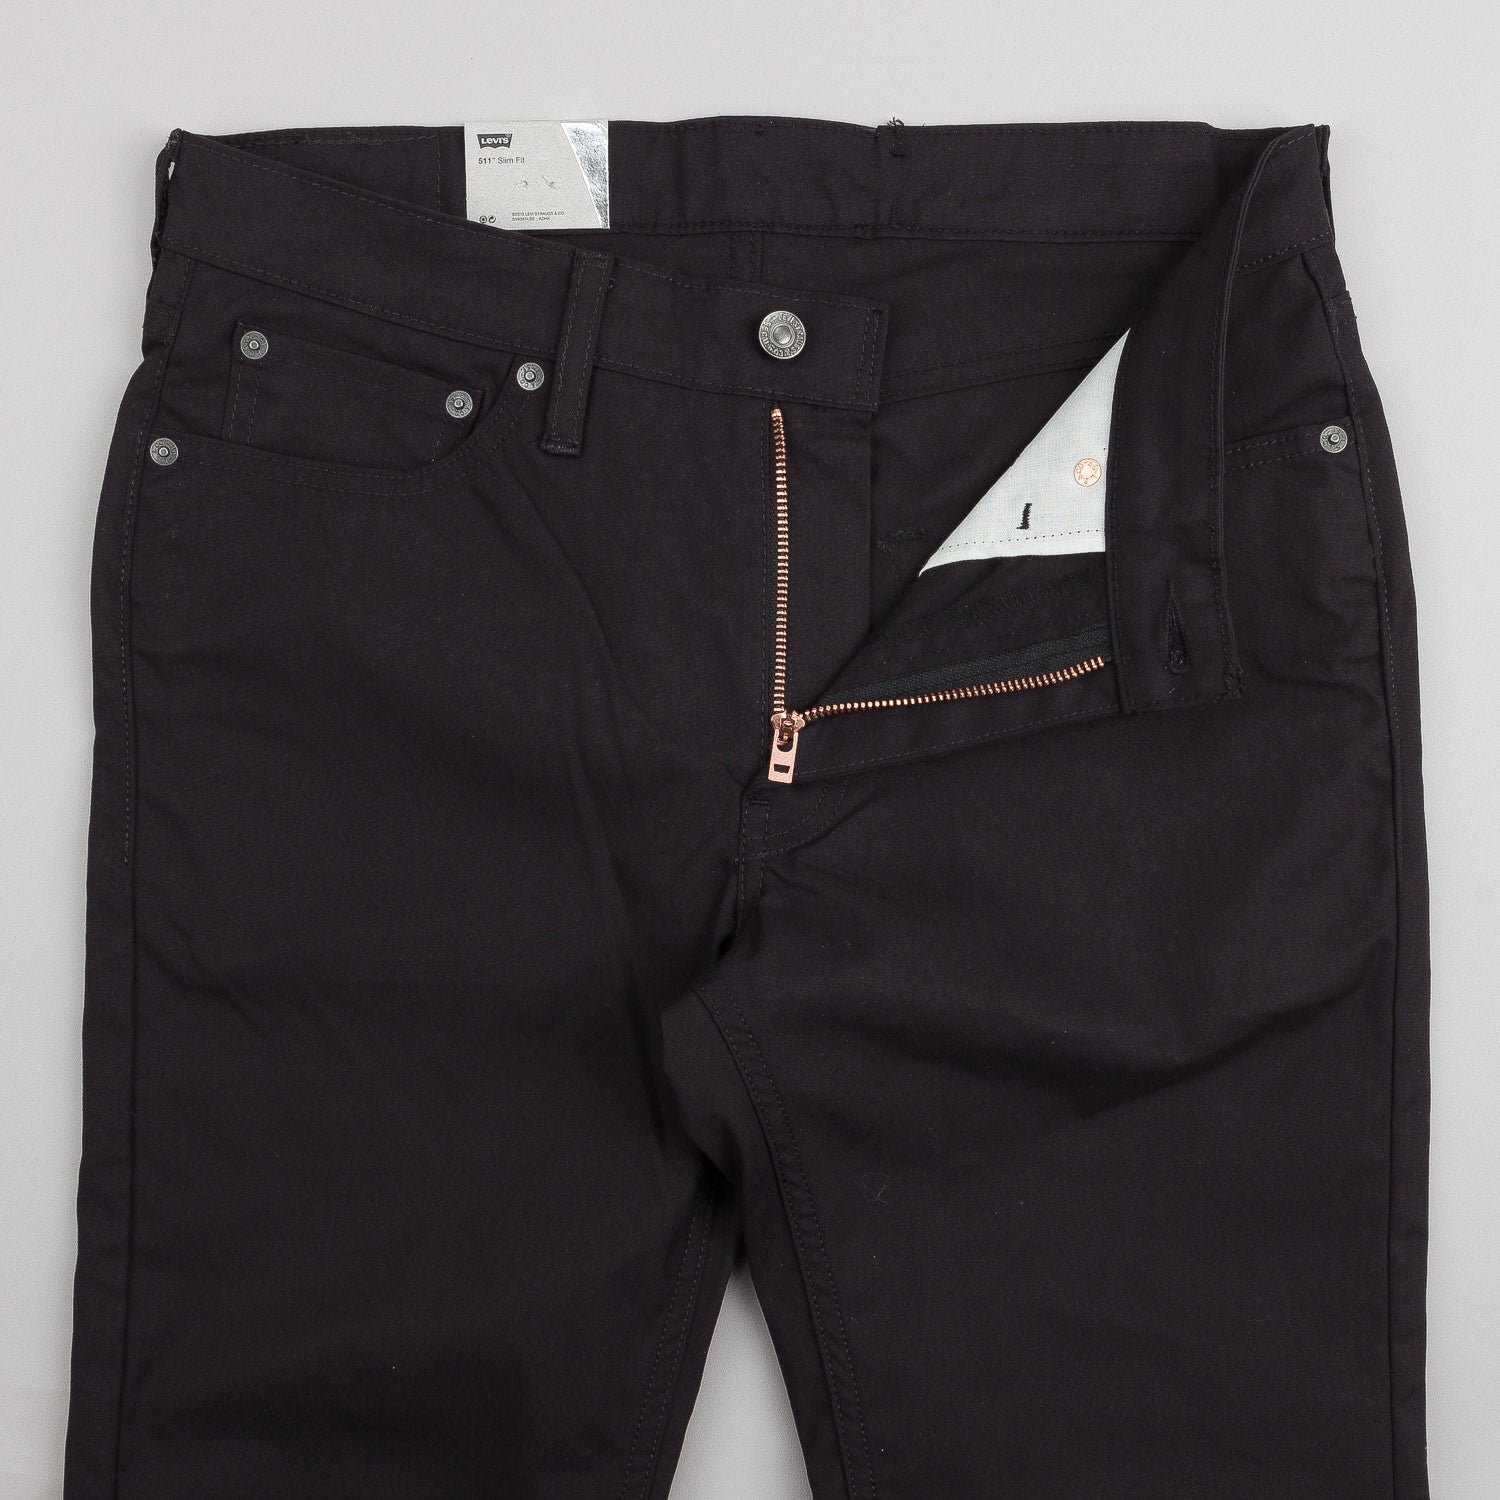 Levi's® Commuter Series 511 Slim Chino - Black Canvas Eco